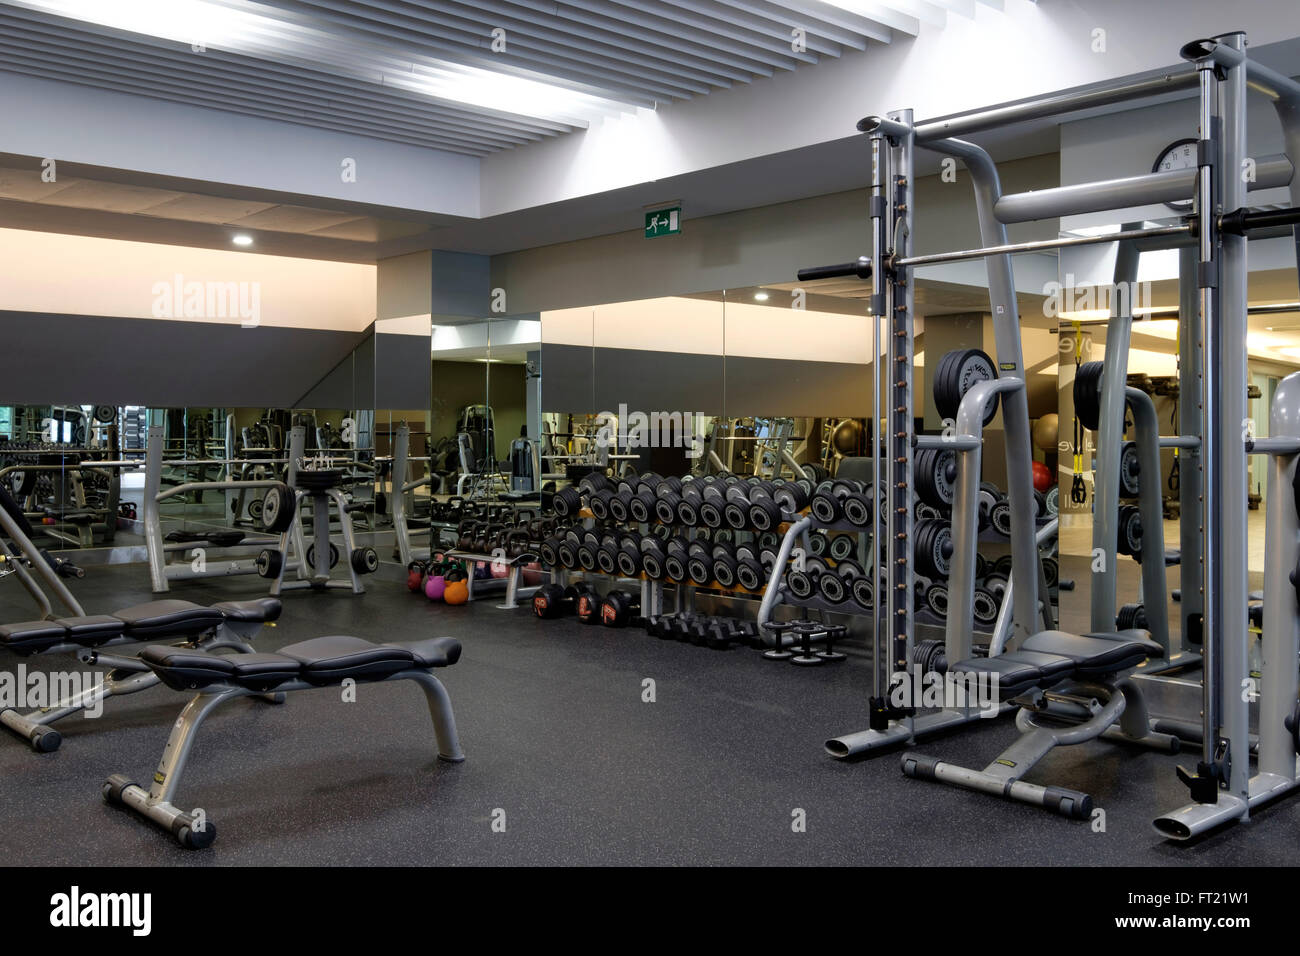 Weight lifting stations at an empty gym - Stock Image